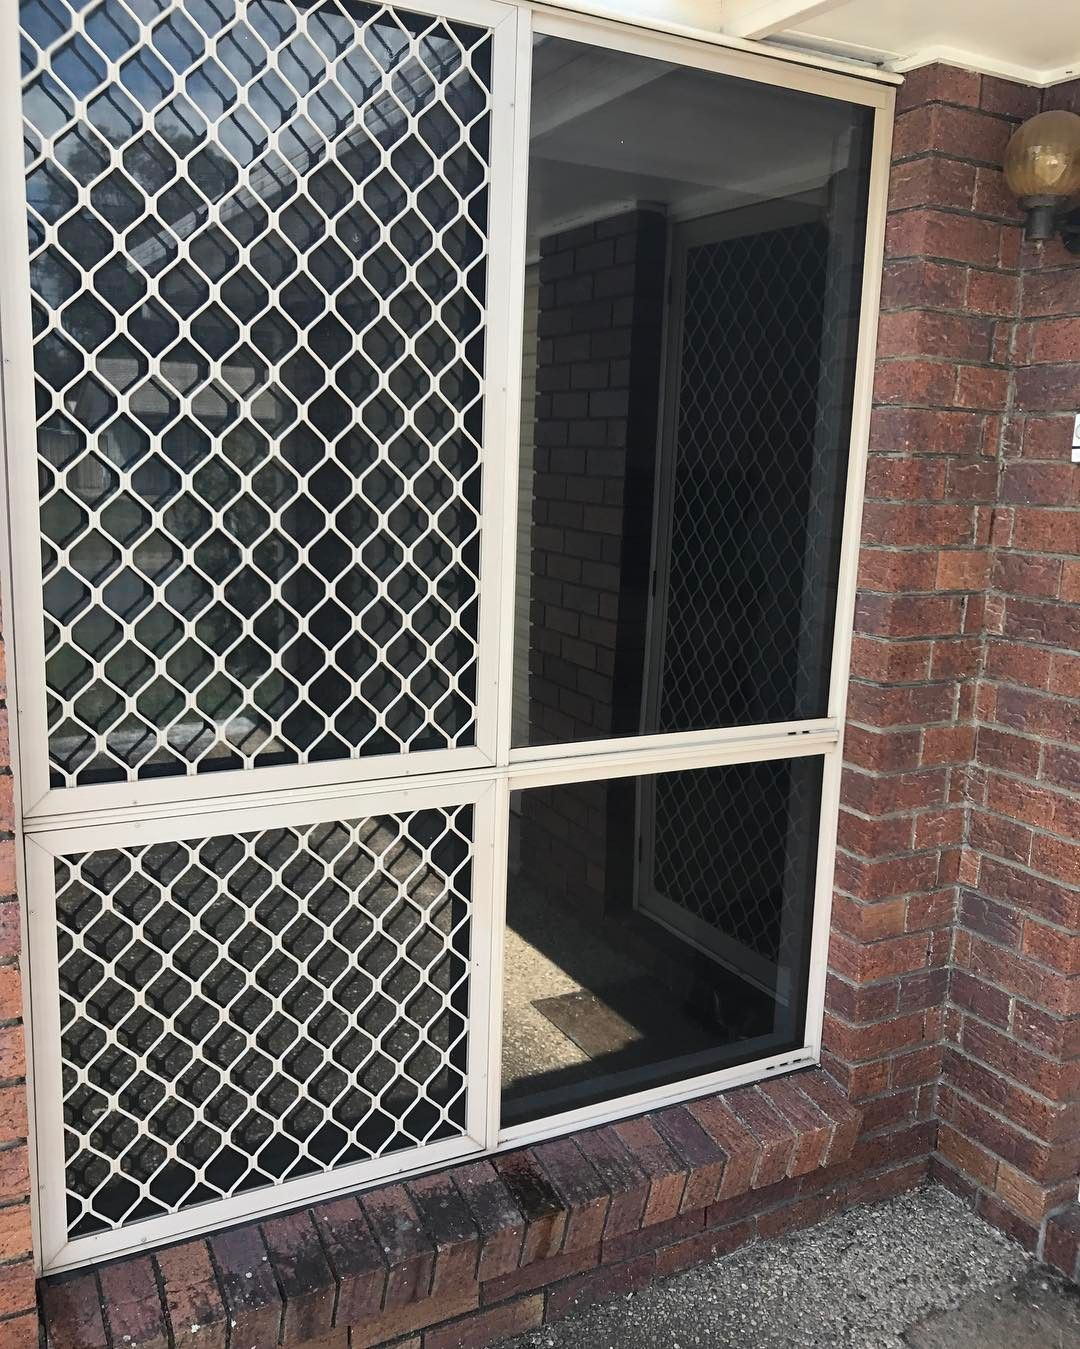 tinted window screen cool your home with black mirror tint we tint windows offers window tinting in brisbane air con struggling